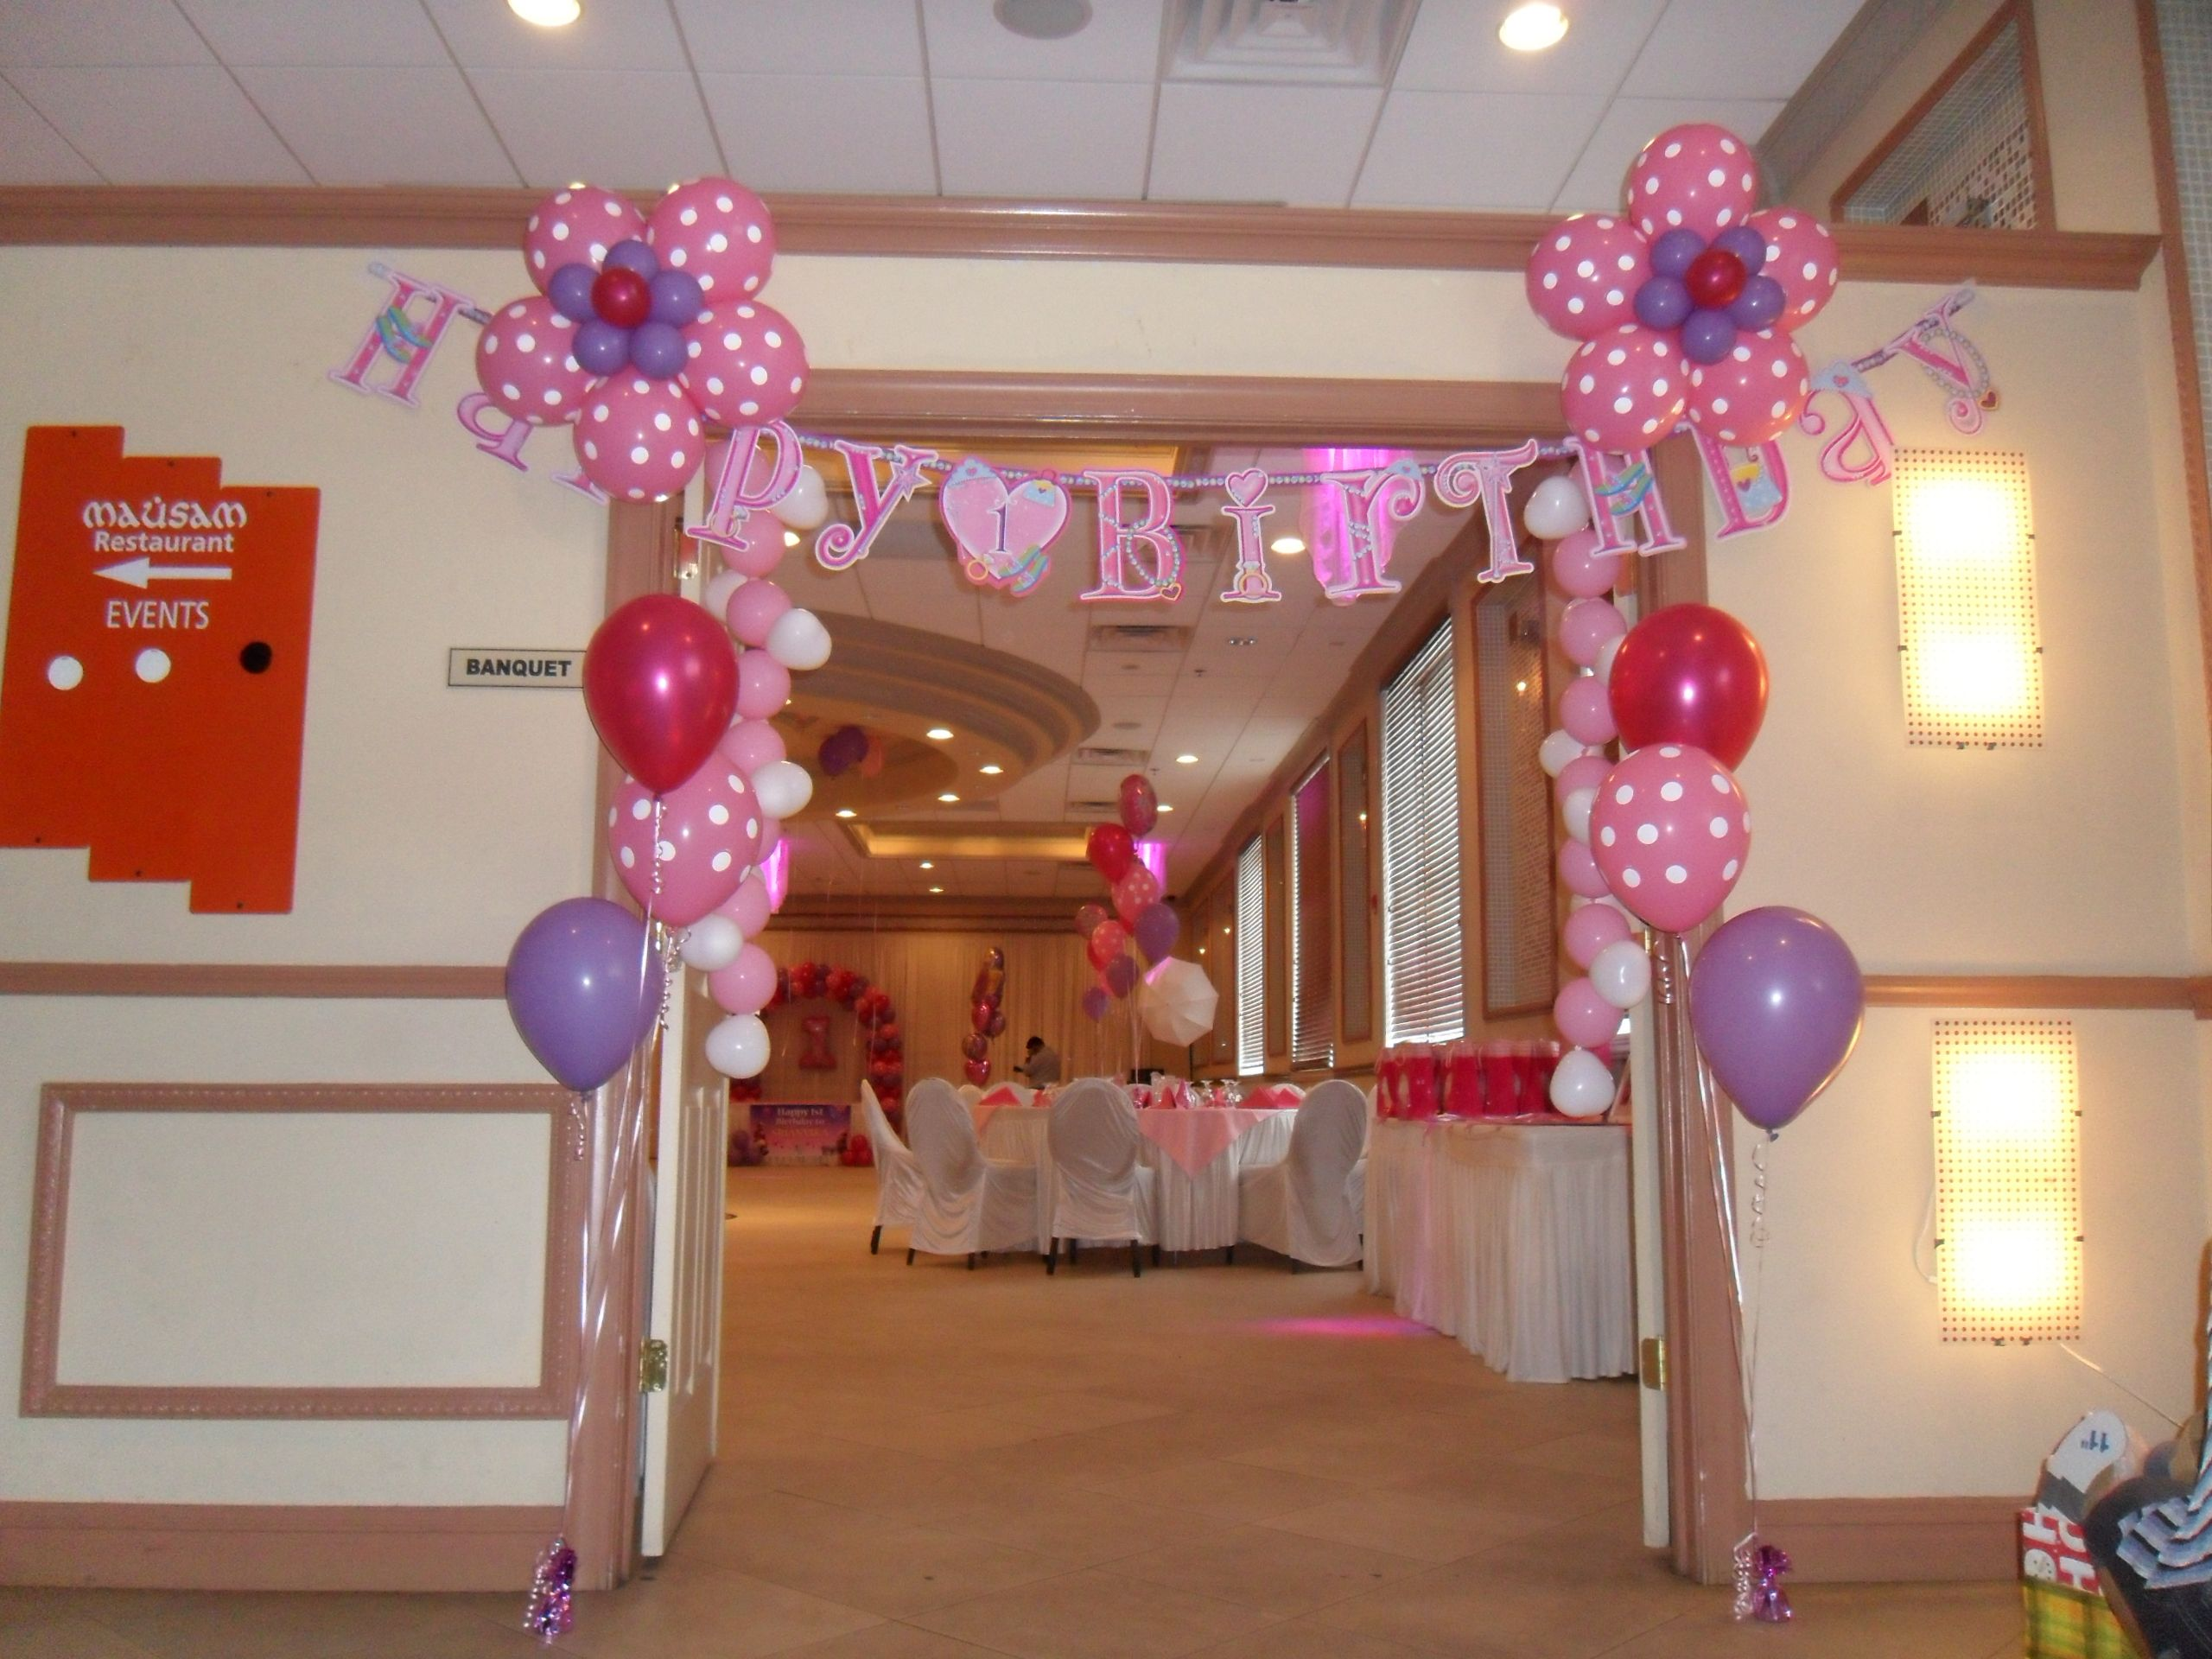 Princess Flower Balloon Door Entrance Decoration For A First